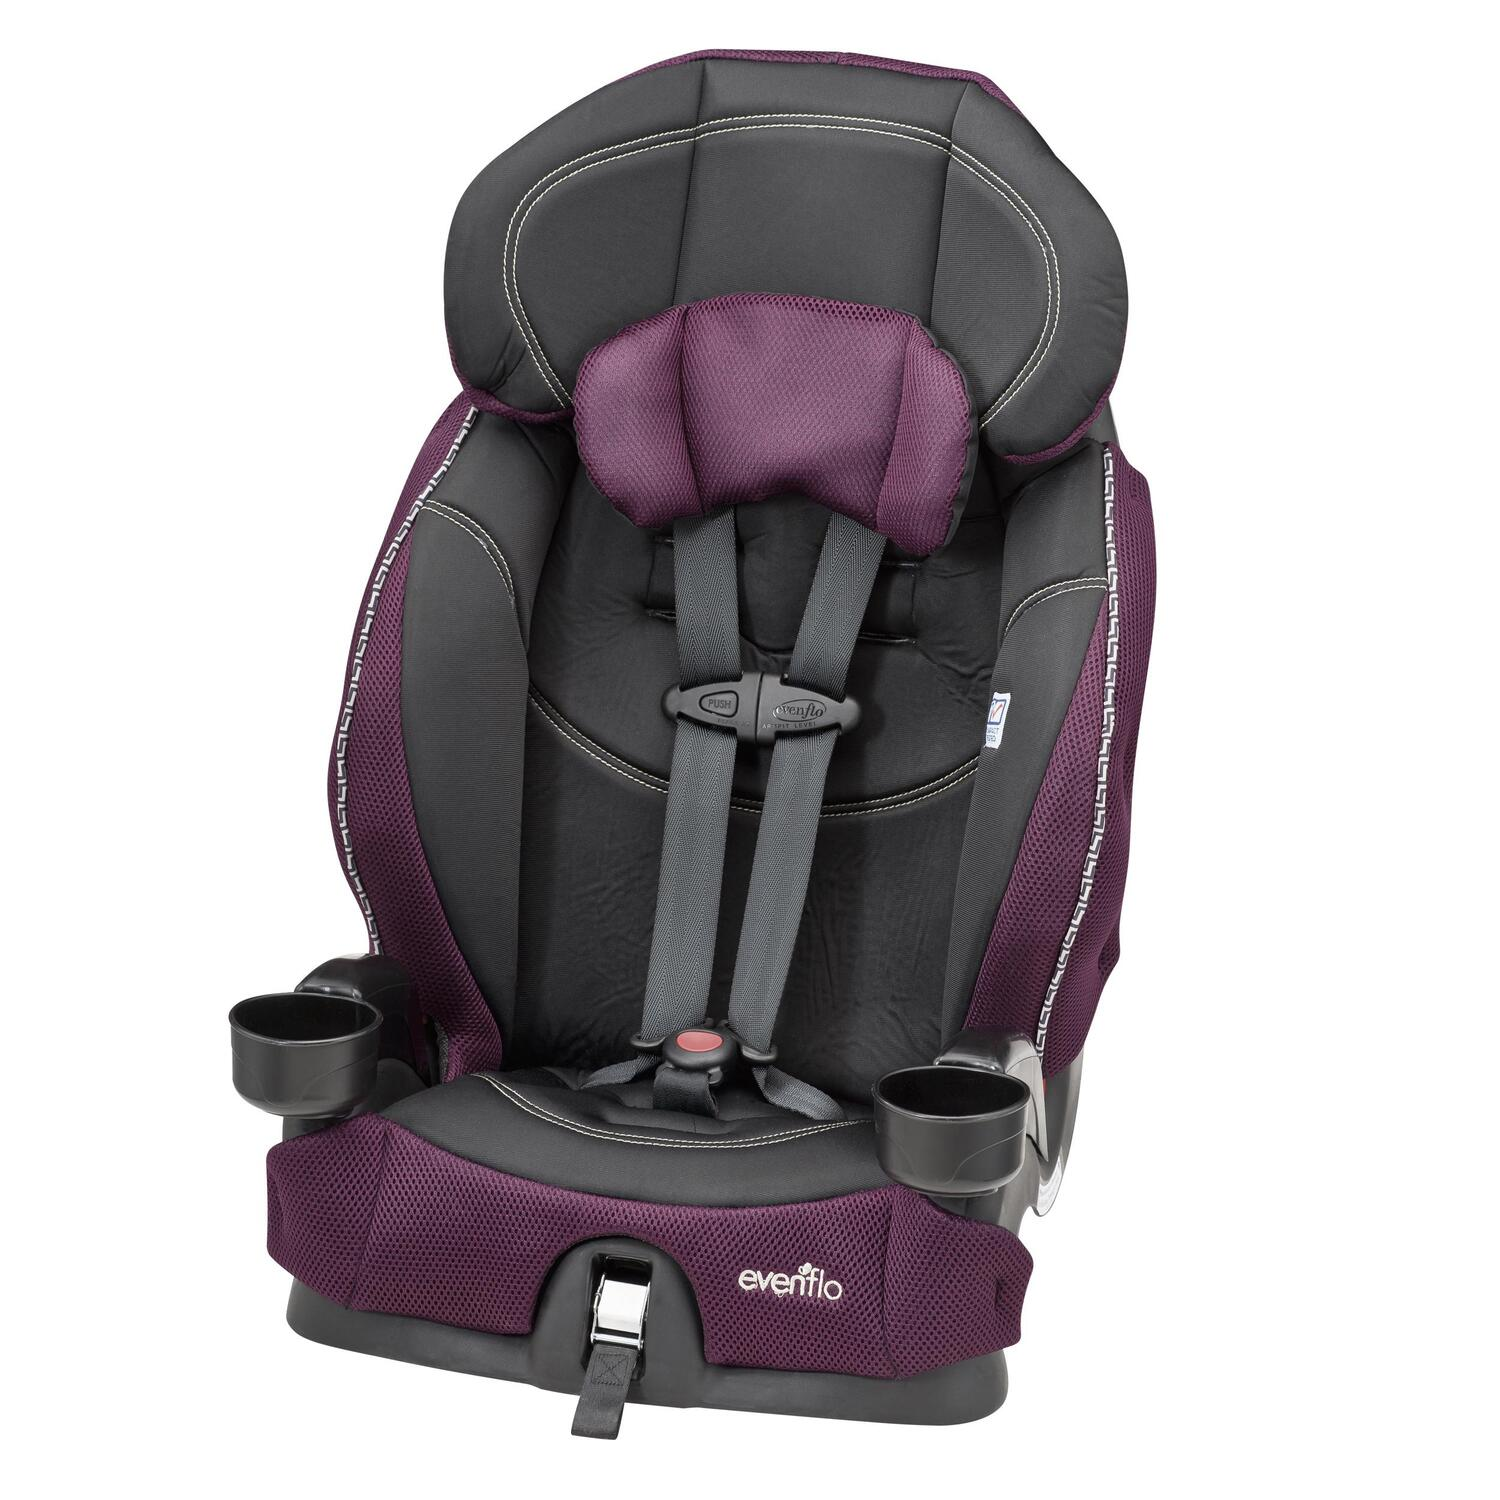 evenflo chase lx harness booster car seat by oj commerce. Black Bedroom Furniture Sets. Home Design Ideas